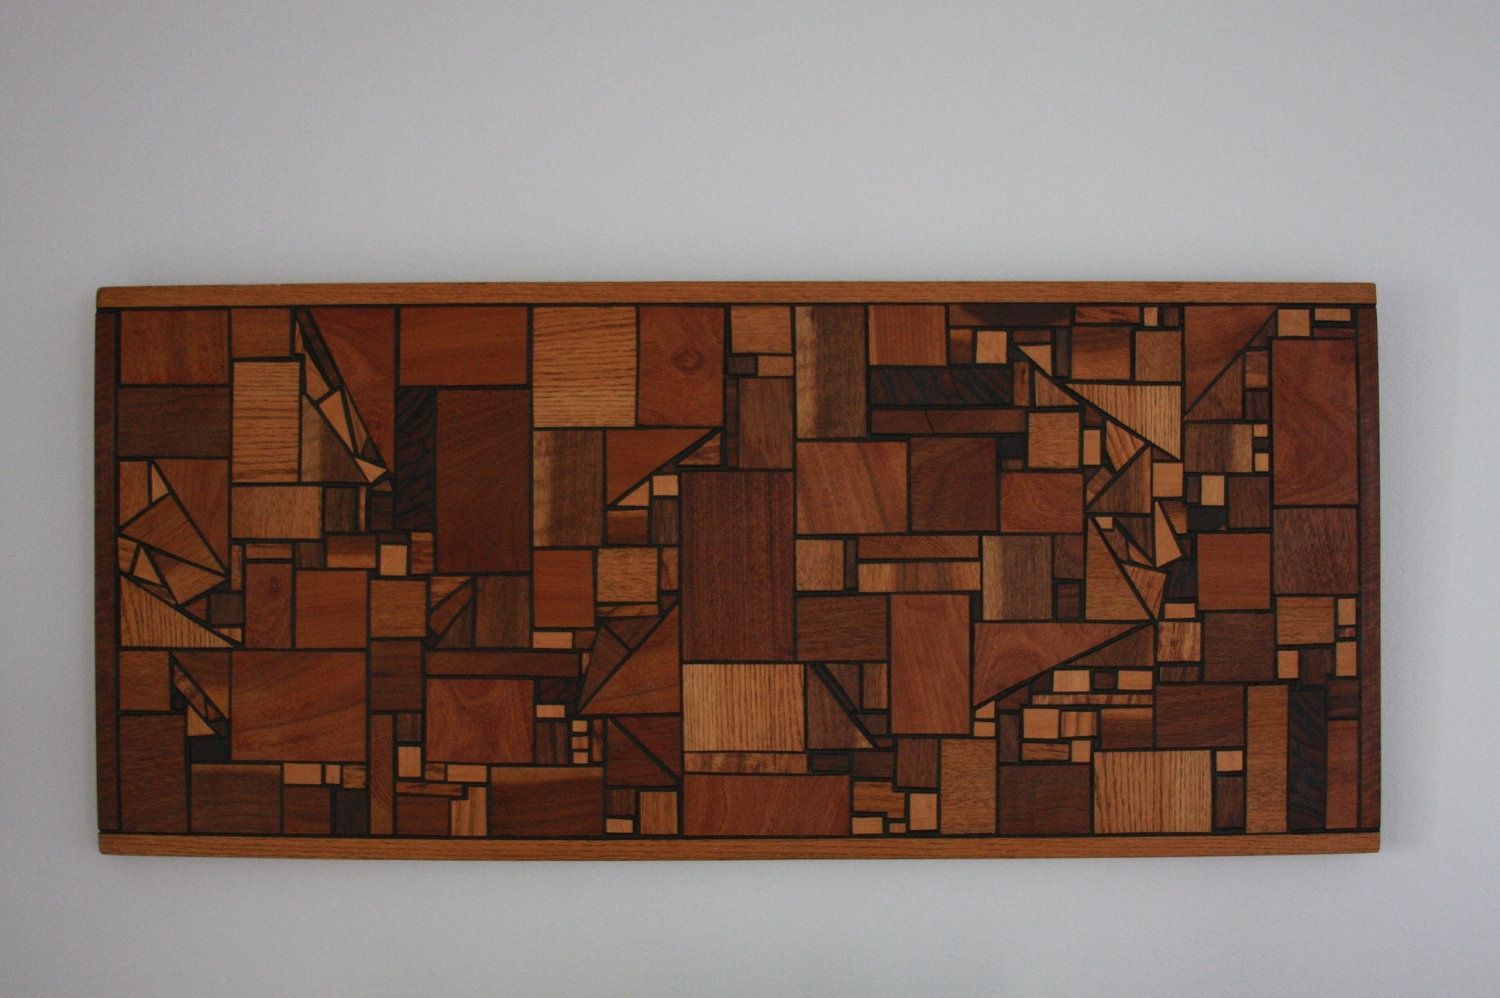 Vintage Mid Century Modern Wood Wall Art Hanging Geometric – Tierra Inside 2017 Mid Century Wall Art (View 17 of 20)